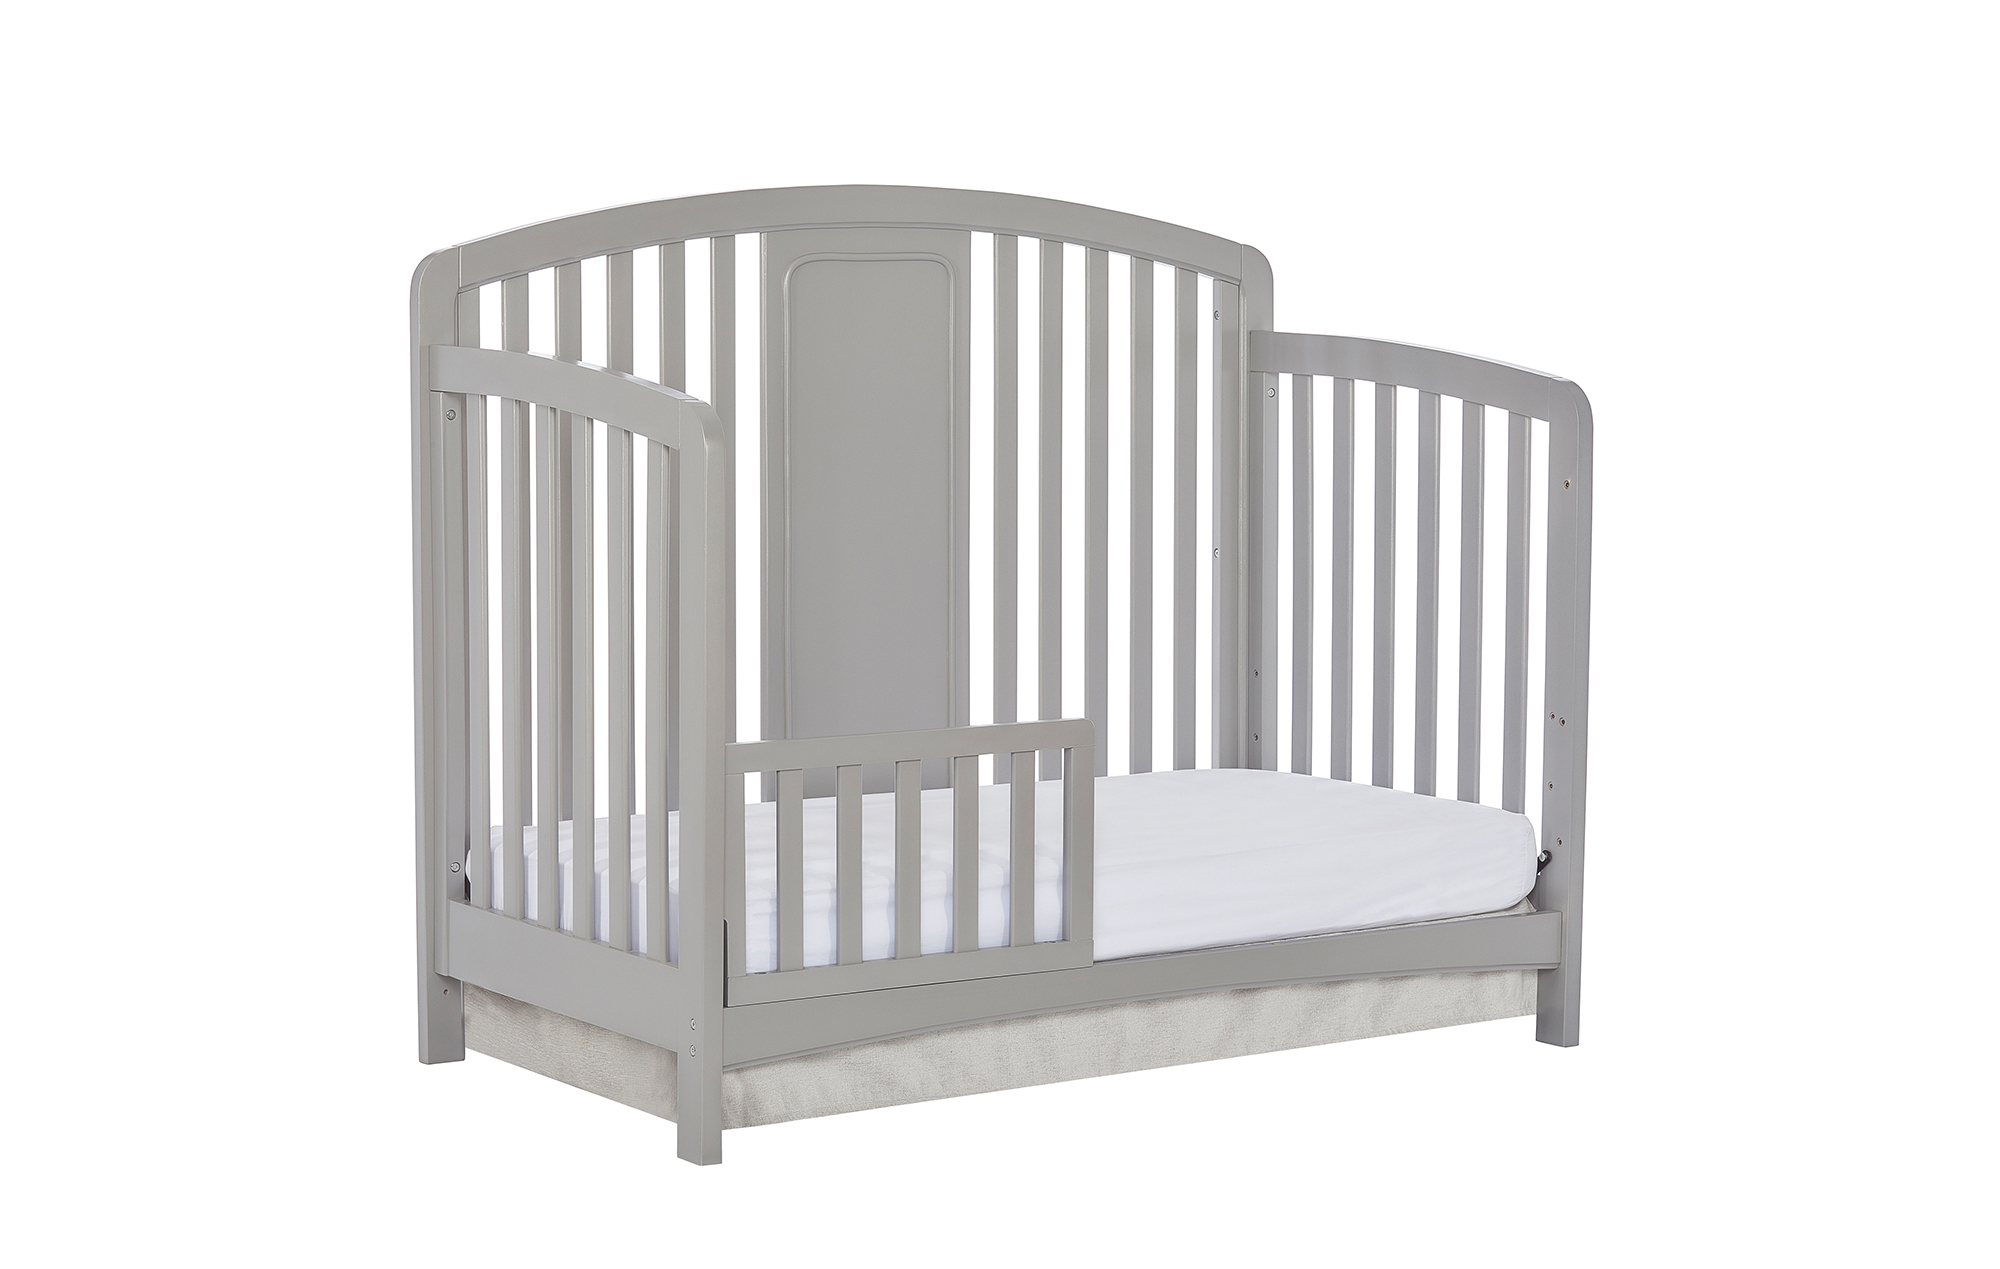 775-SGP Dakota Toddler Bed